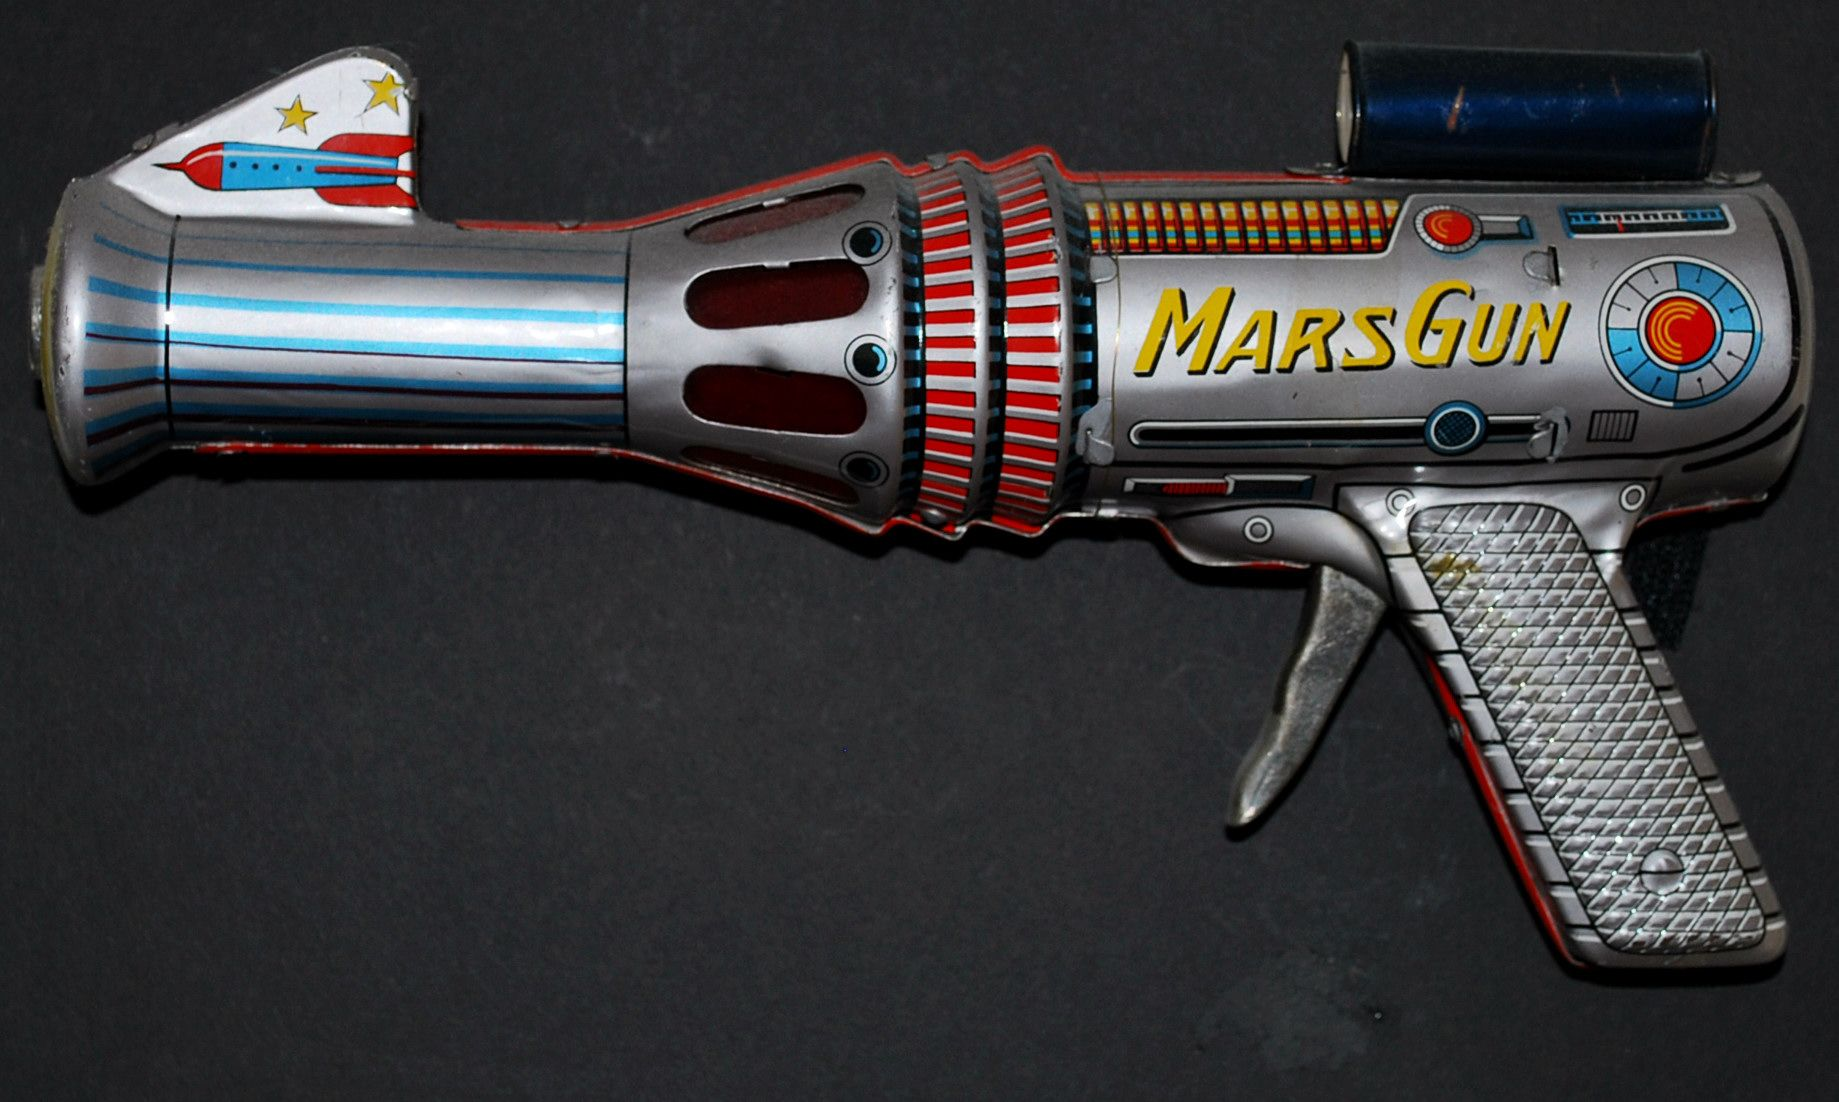 The coolest ray gun we've ever seen!